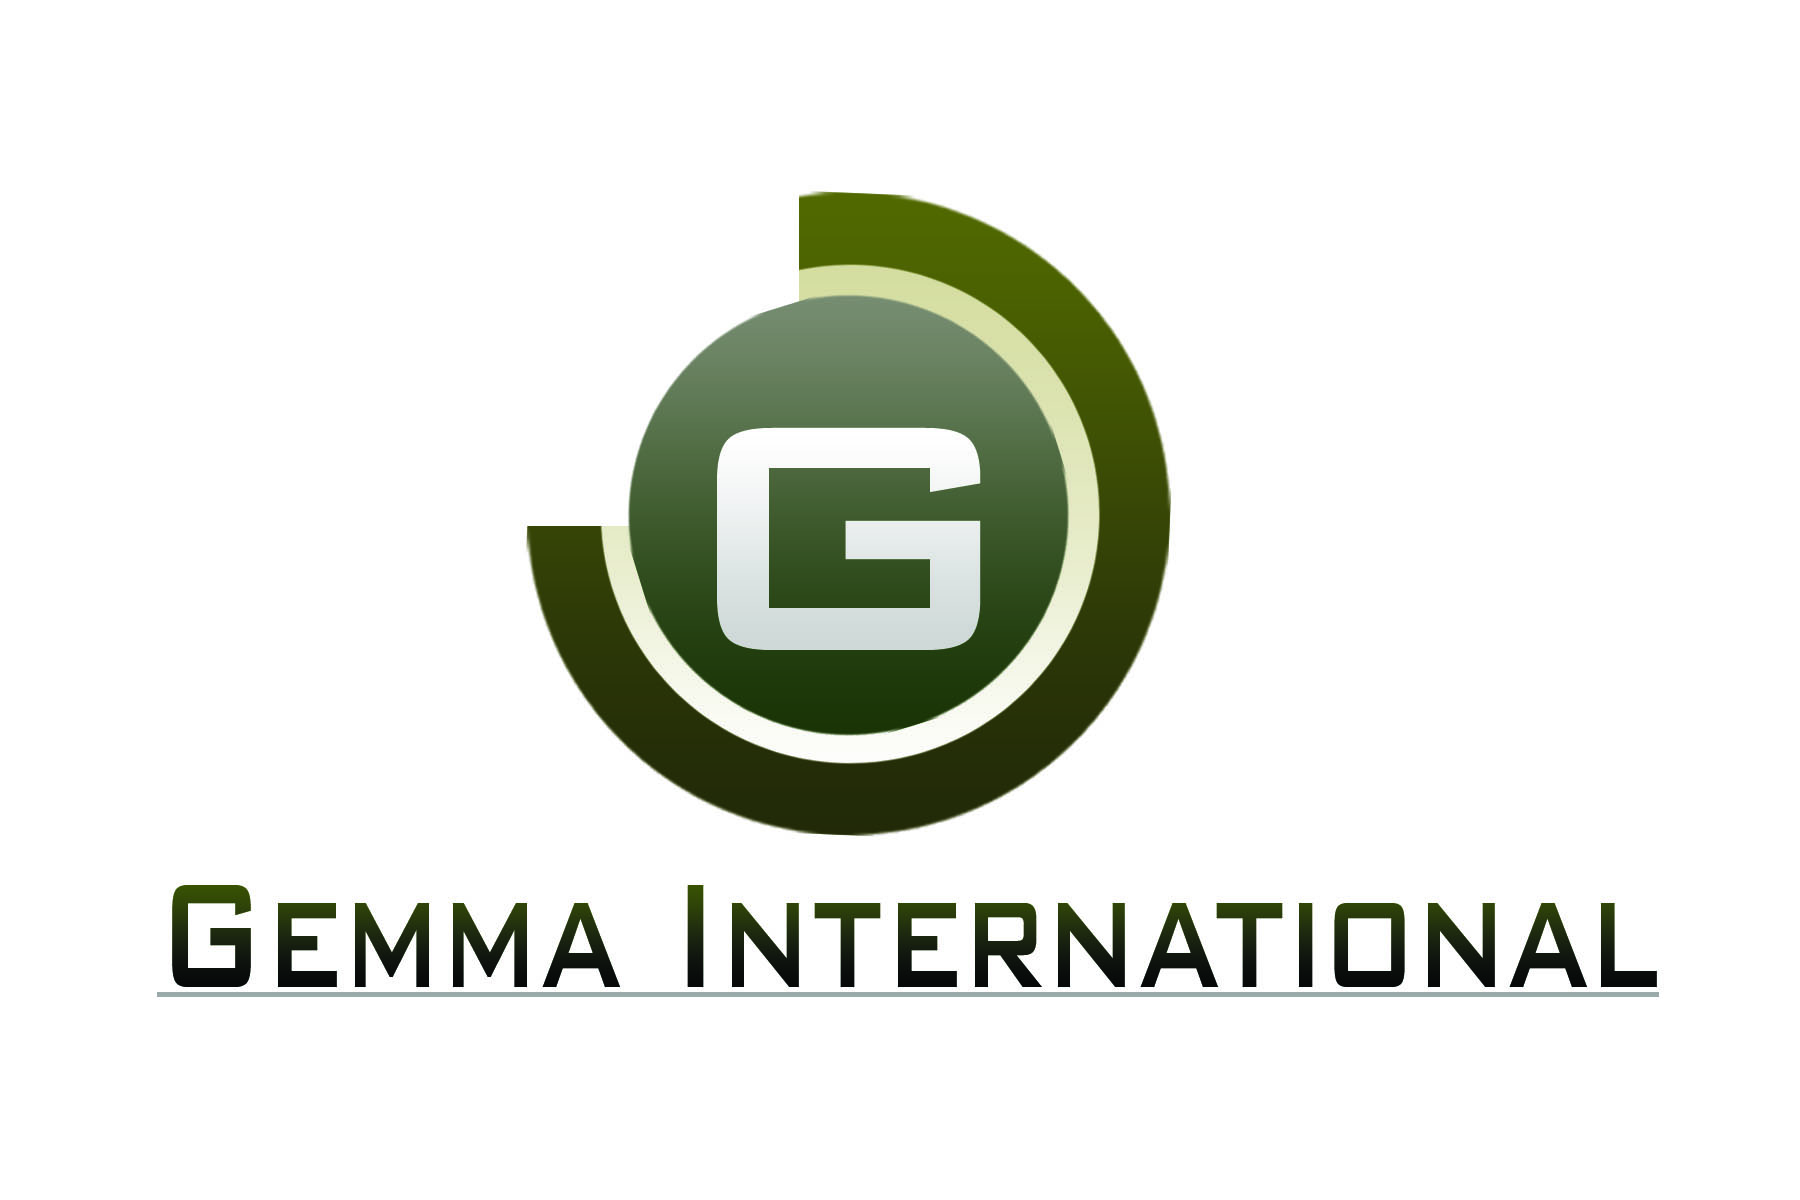 Logo Design by Jastinejay Manliguez - Entry No. 6 in the Logo Design Contest Artistic Logo Design for Gemma International.